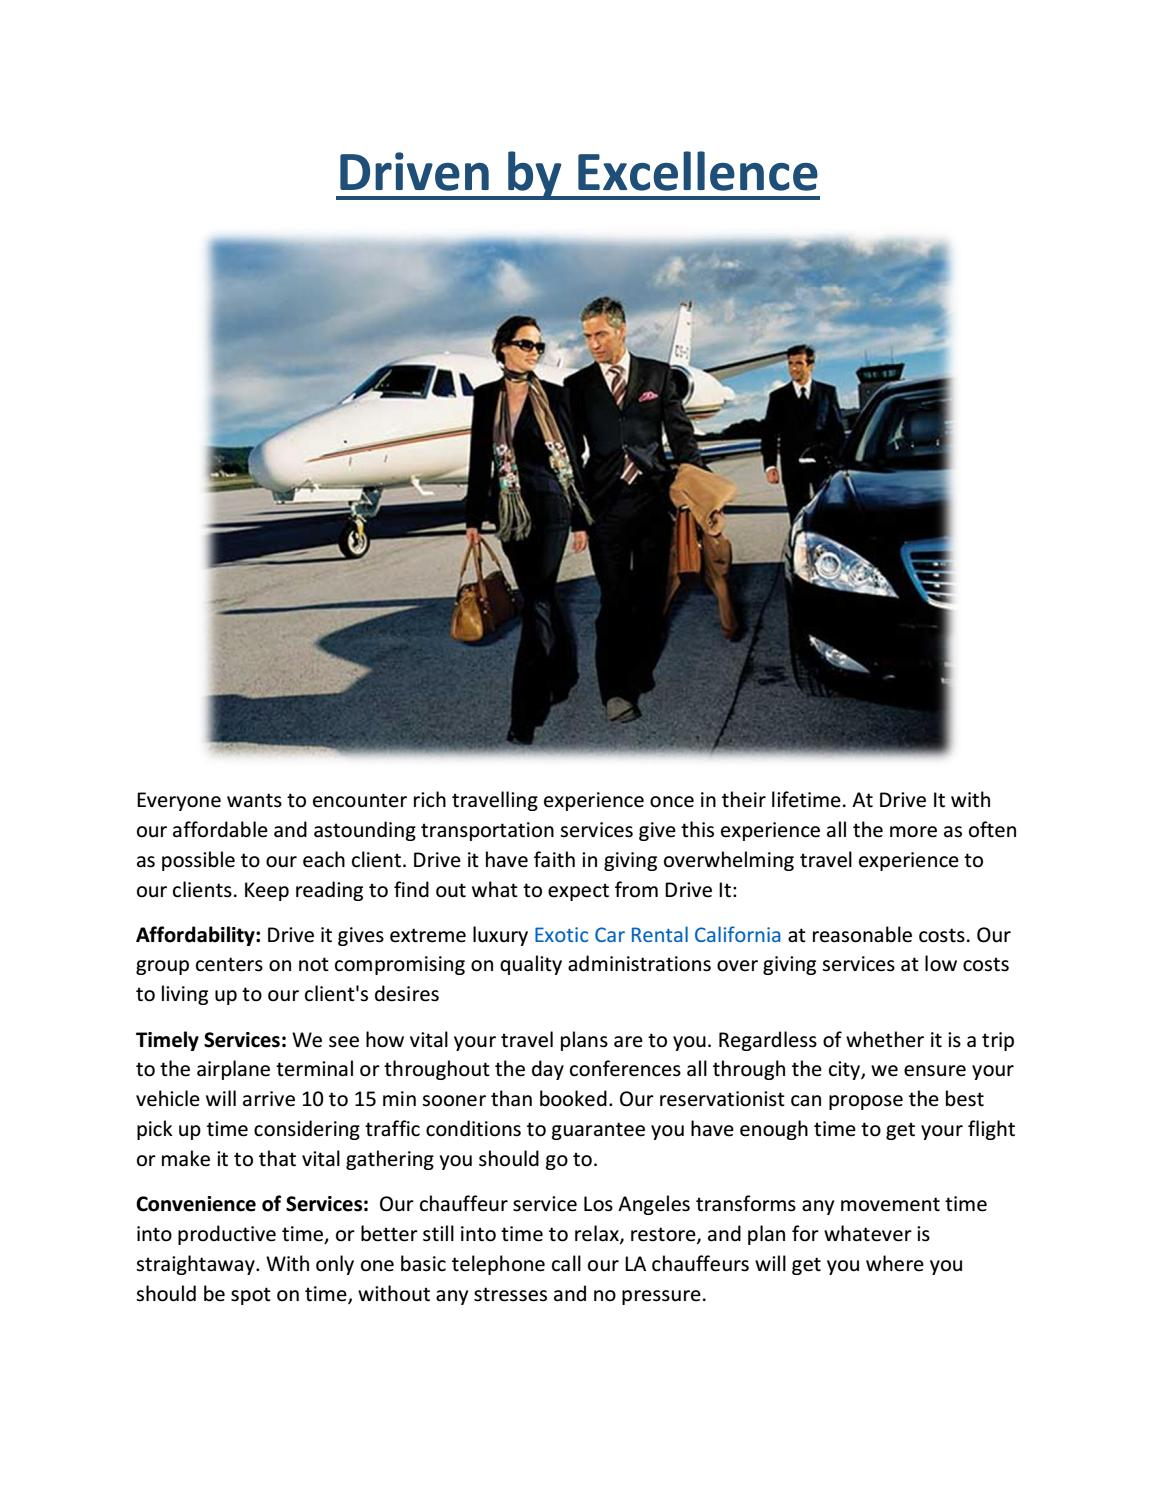 Luxury Car Rental And Chauffeur Services In Los Angeles By Anu